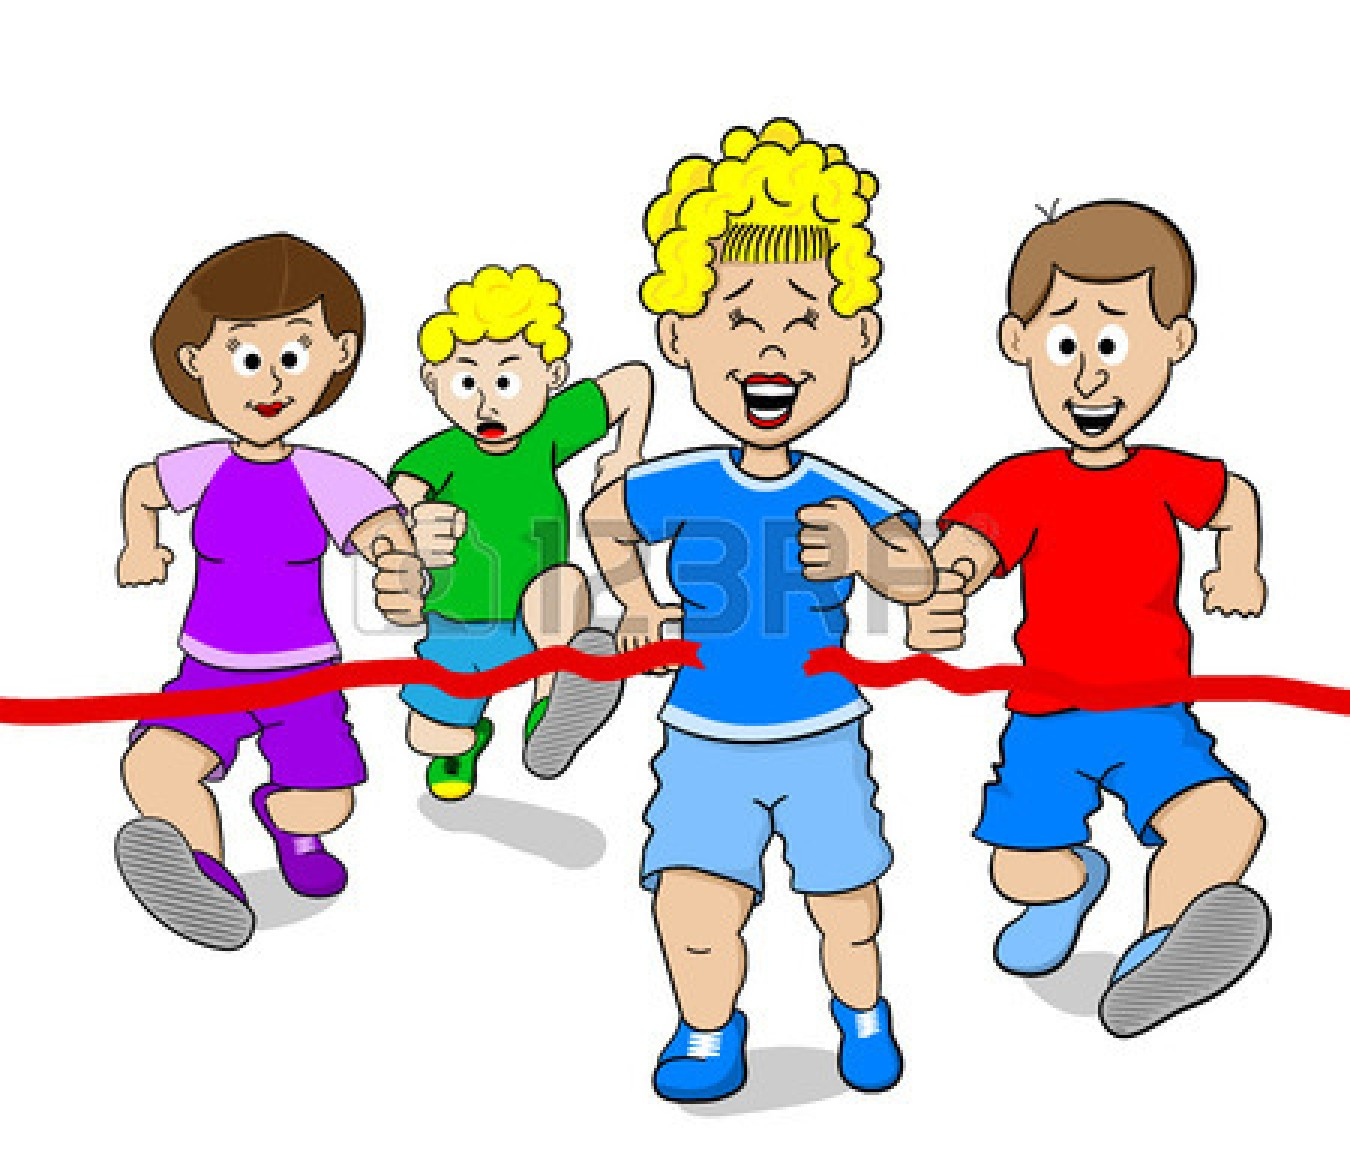 Race clipart #16, Download drawings